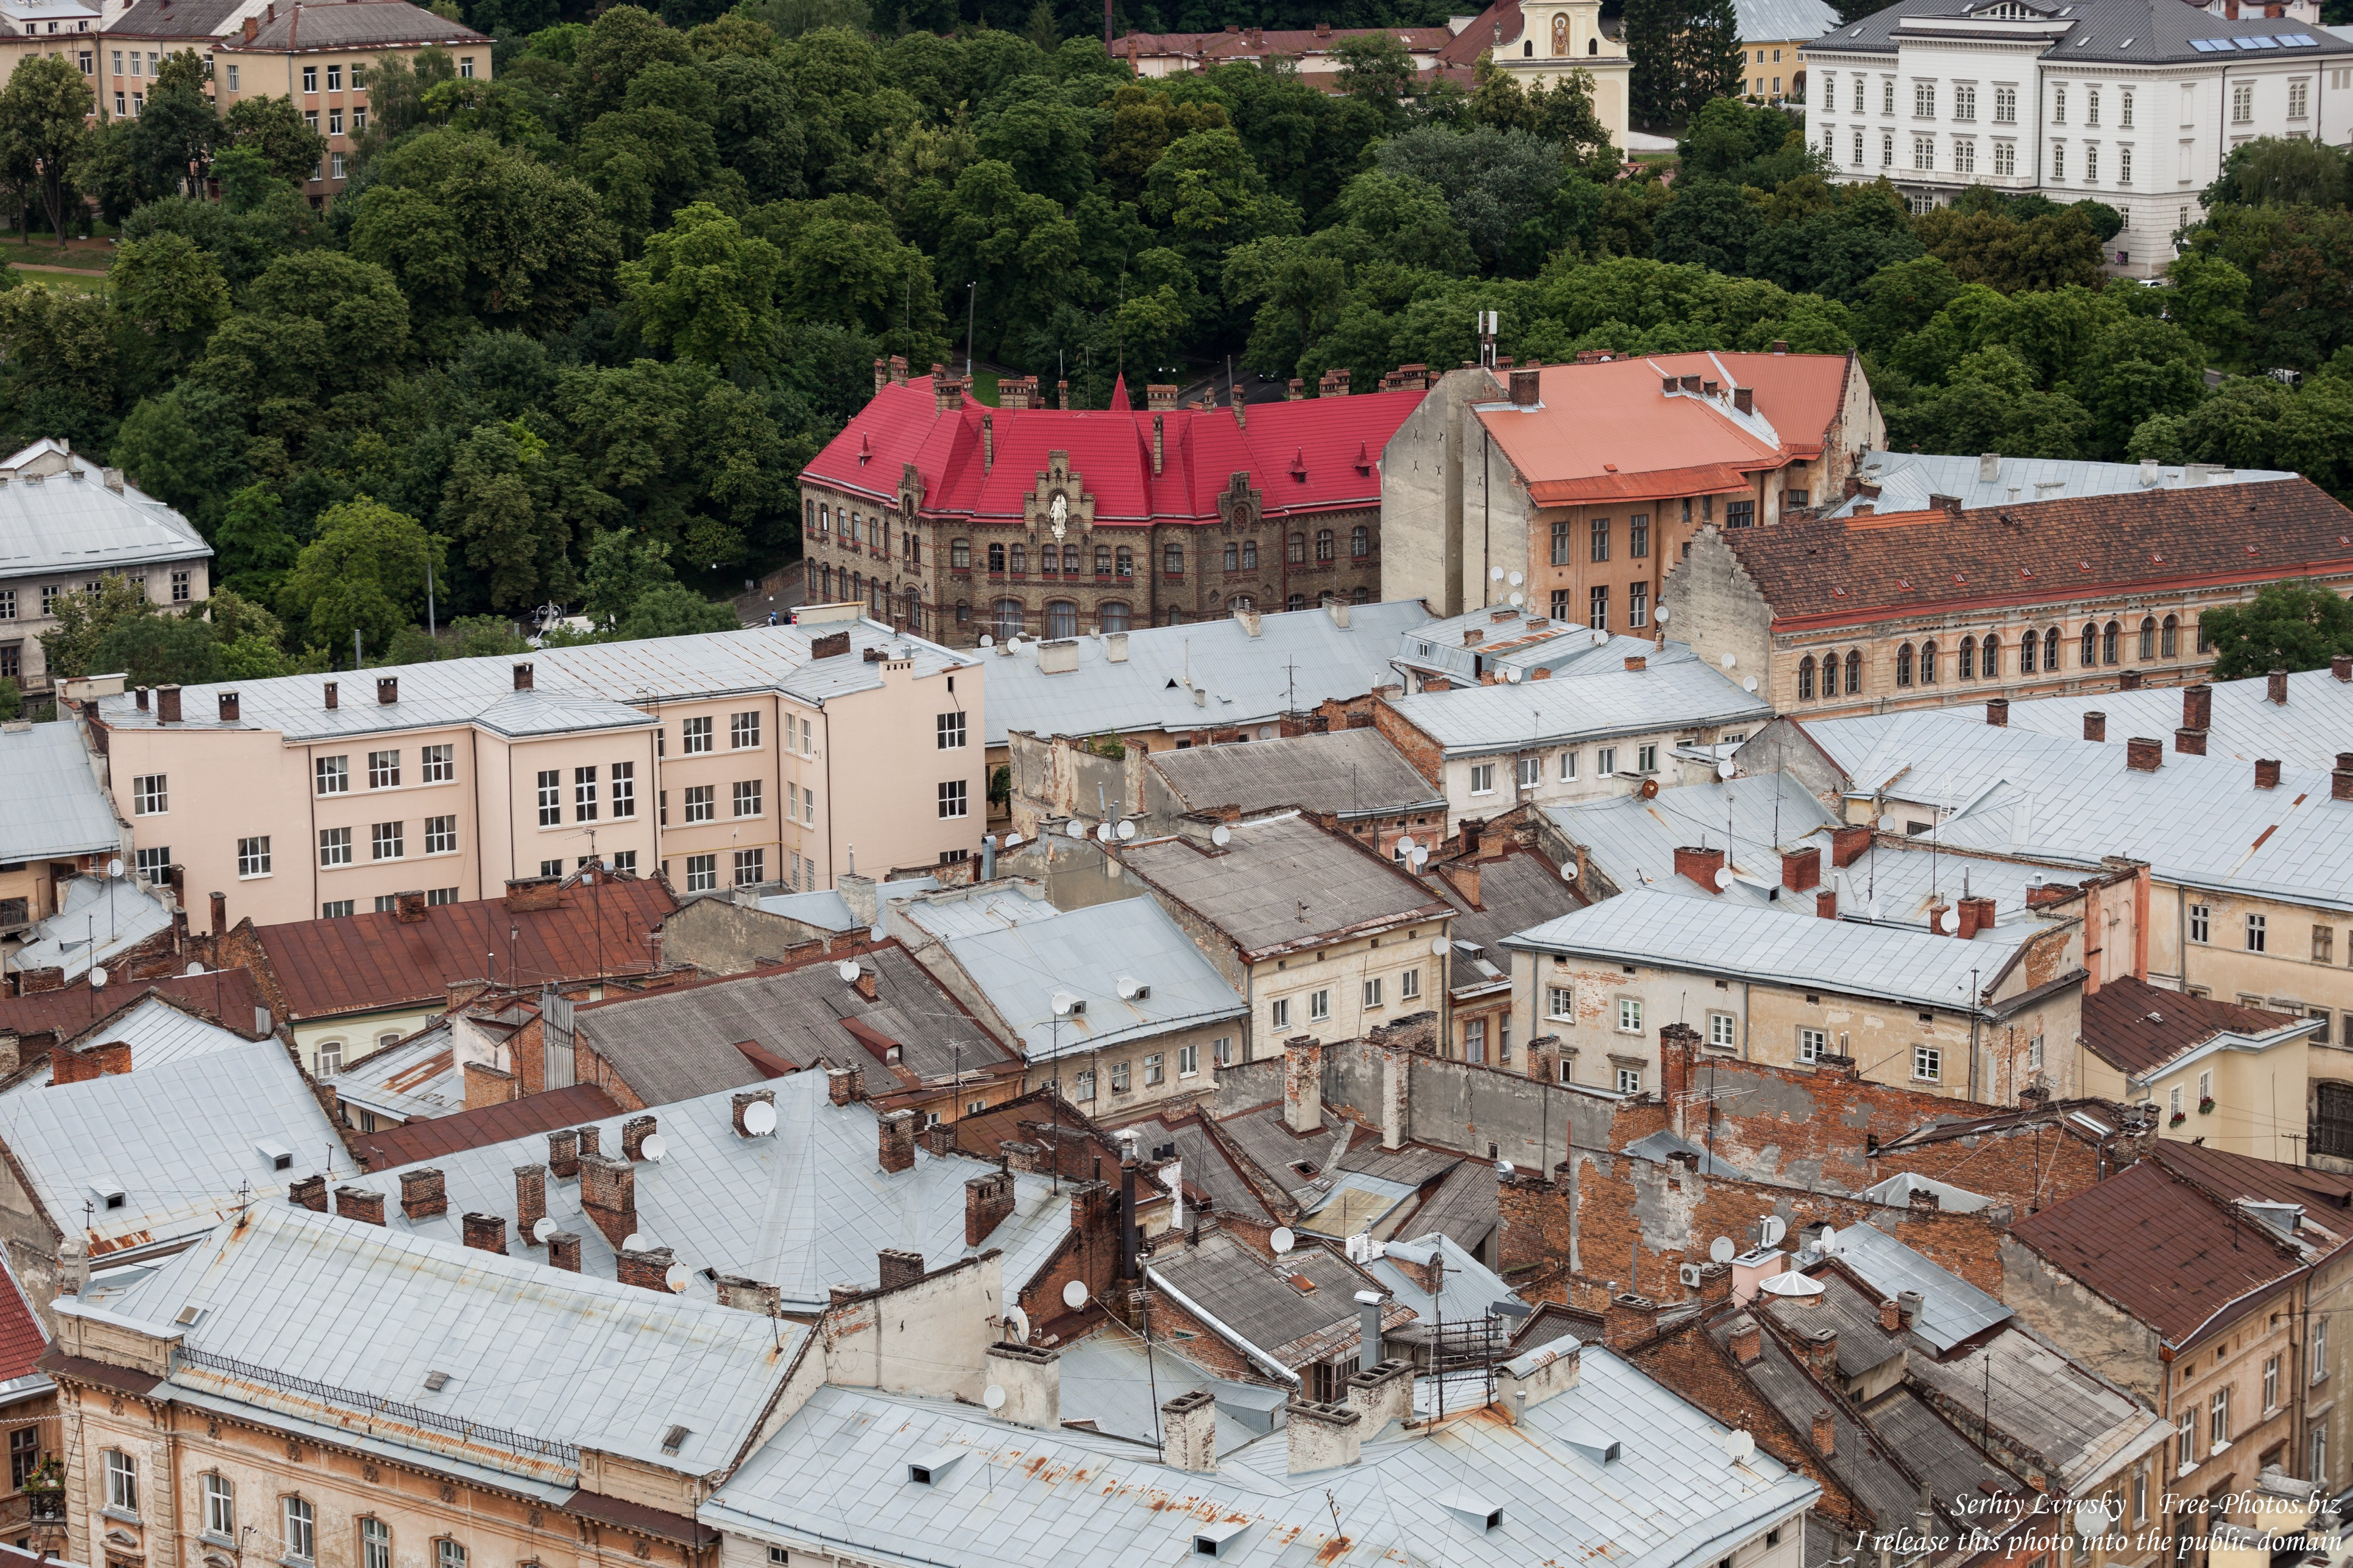 Lviv city in Ukraine photographed in June 2016, picture 11